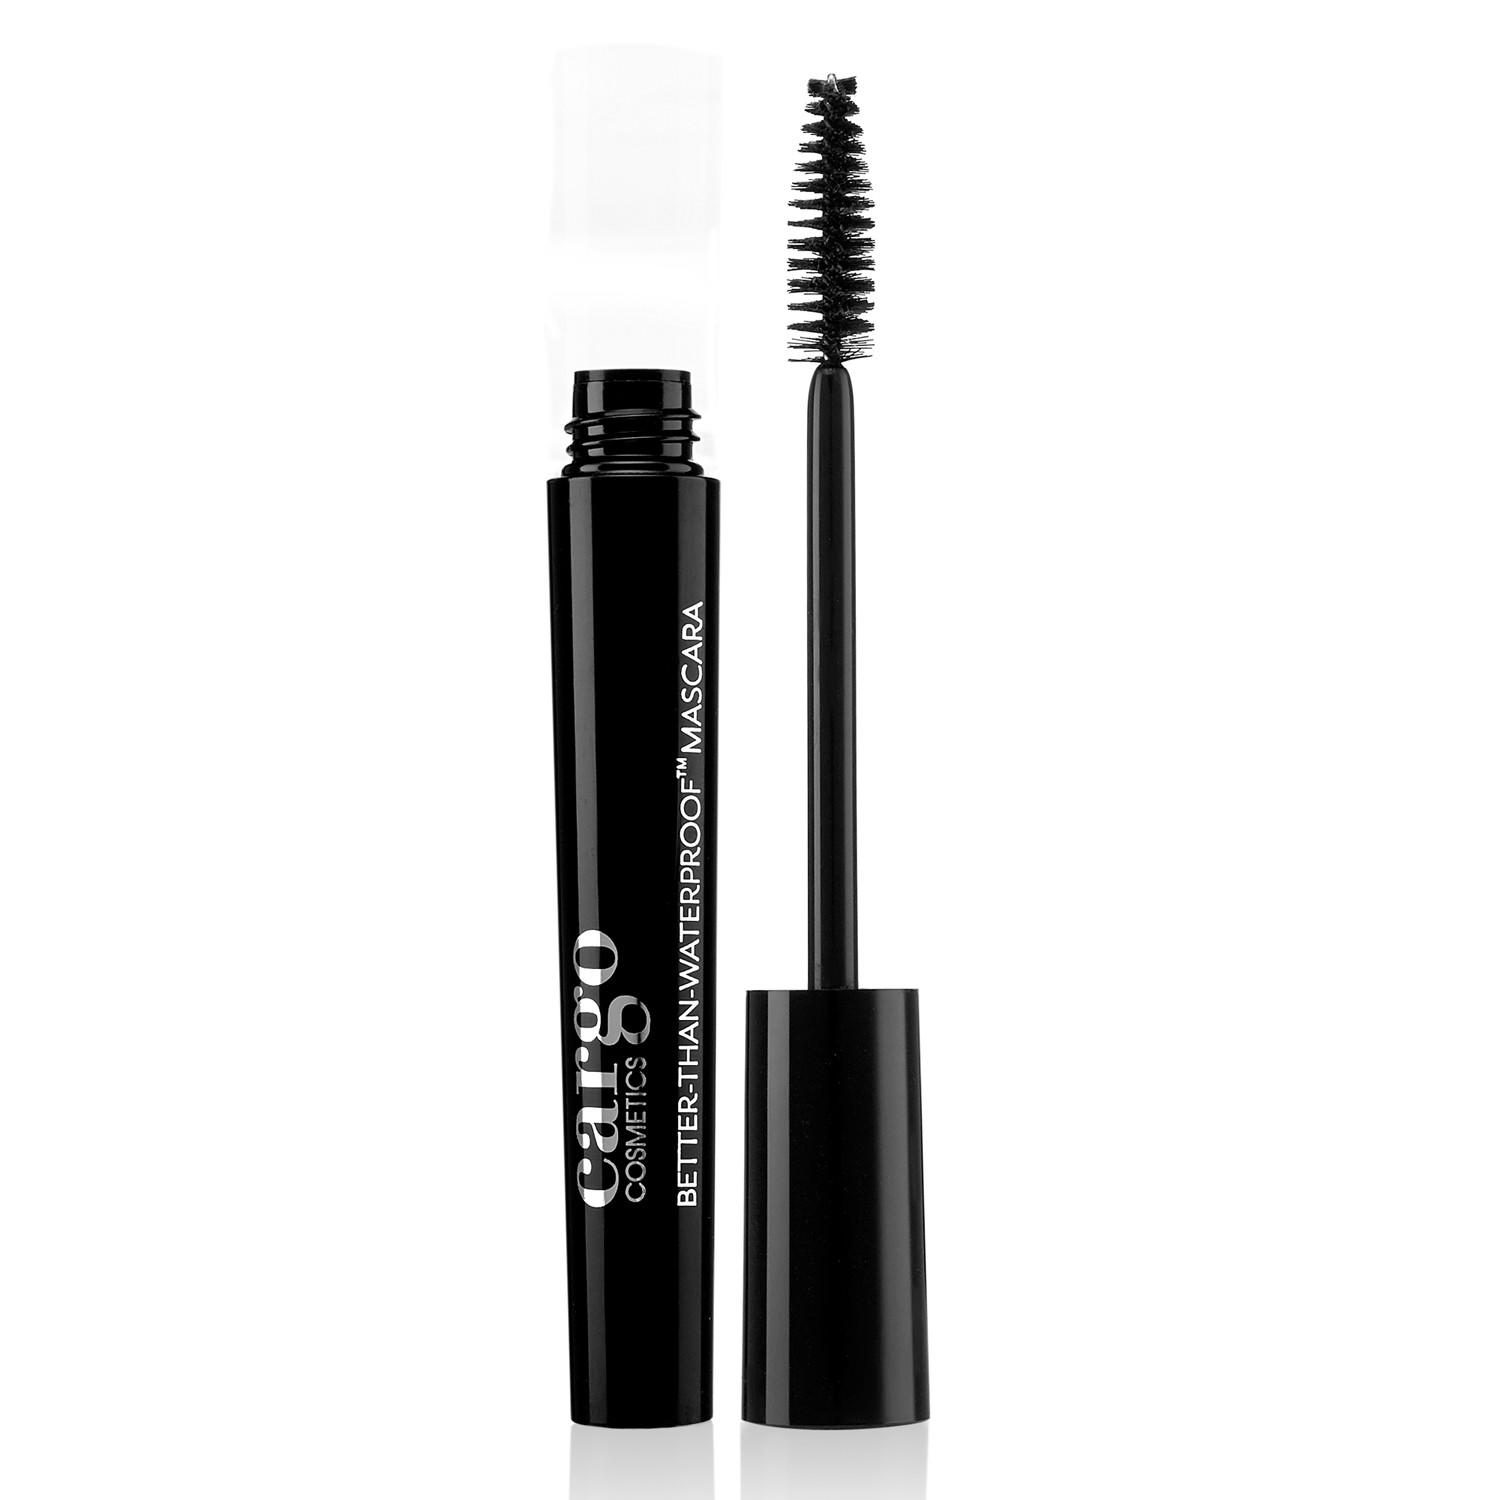 Cargo Cosmetics Black Better-Than-Waterproof Mascara